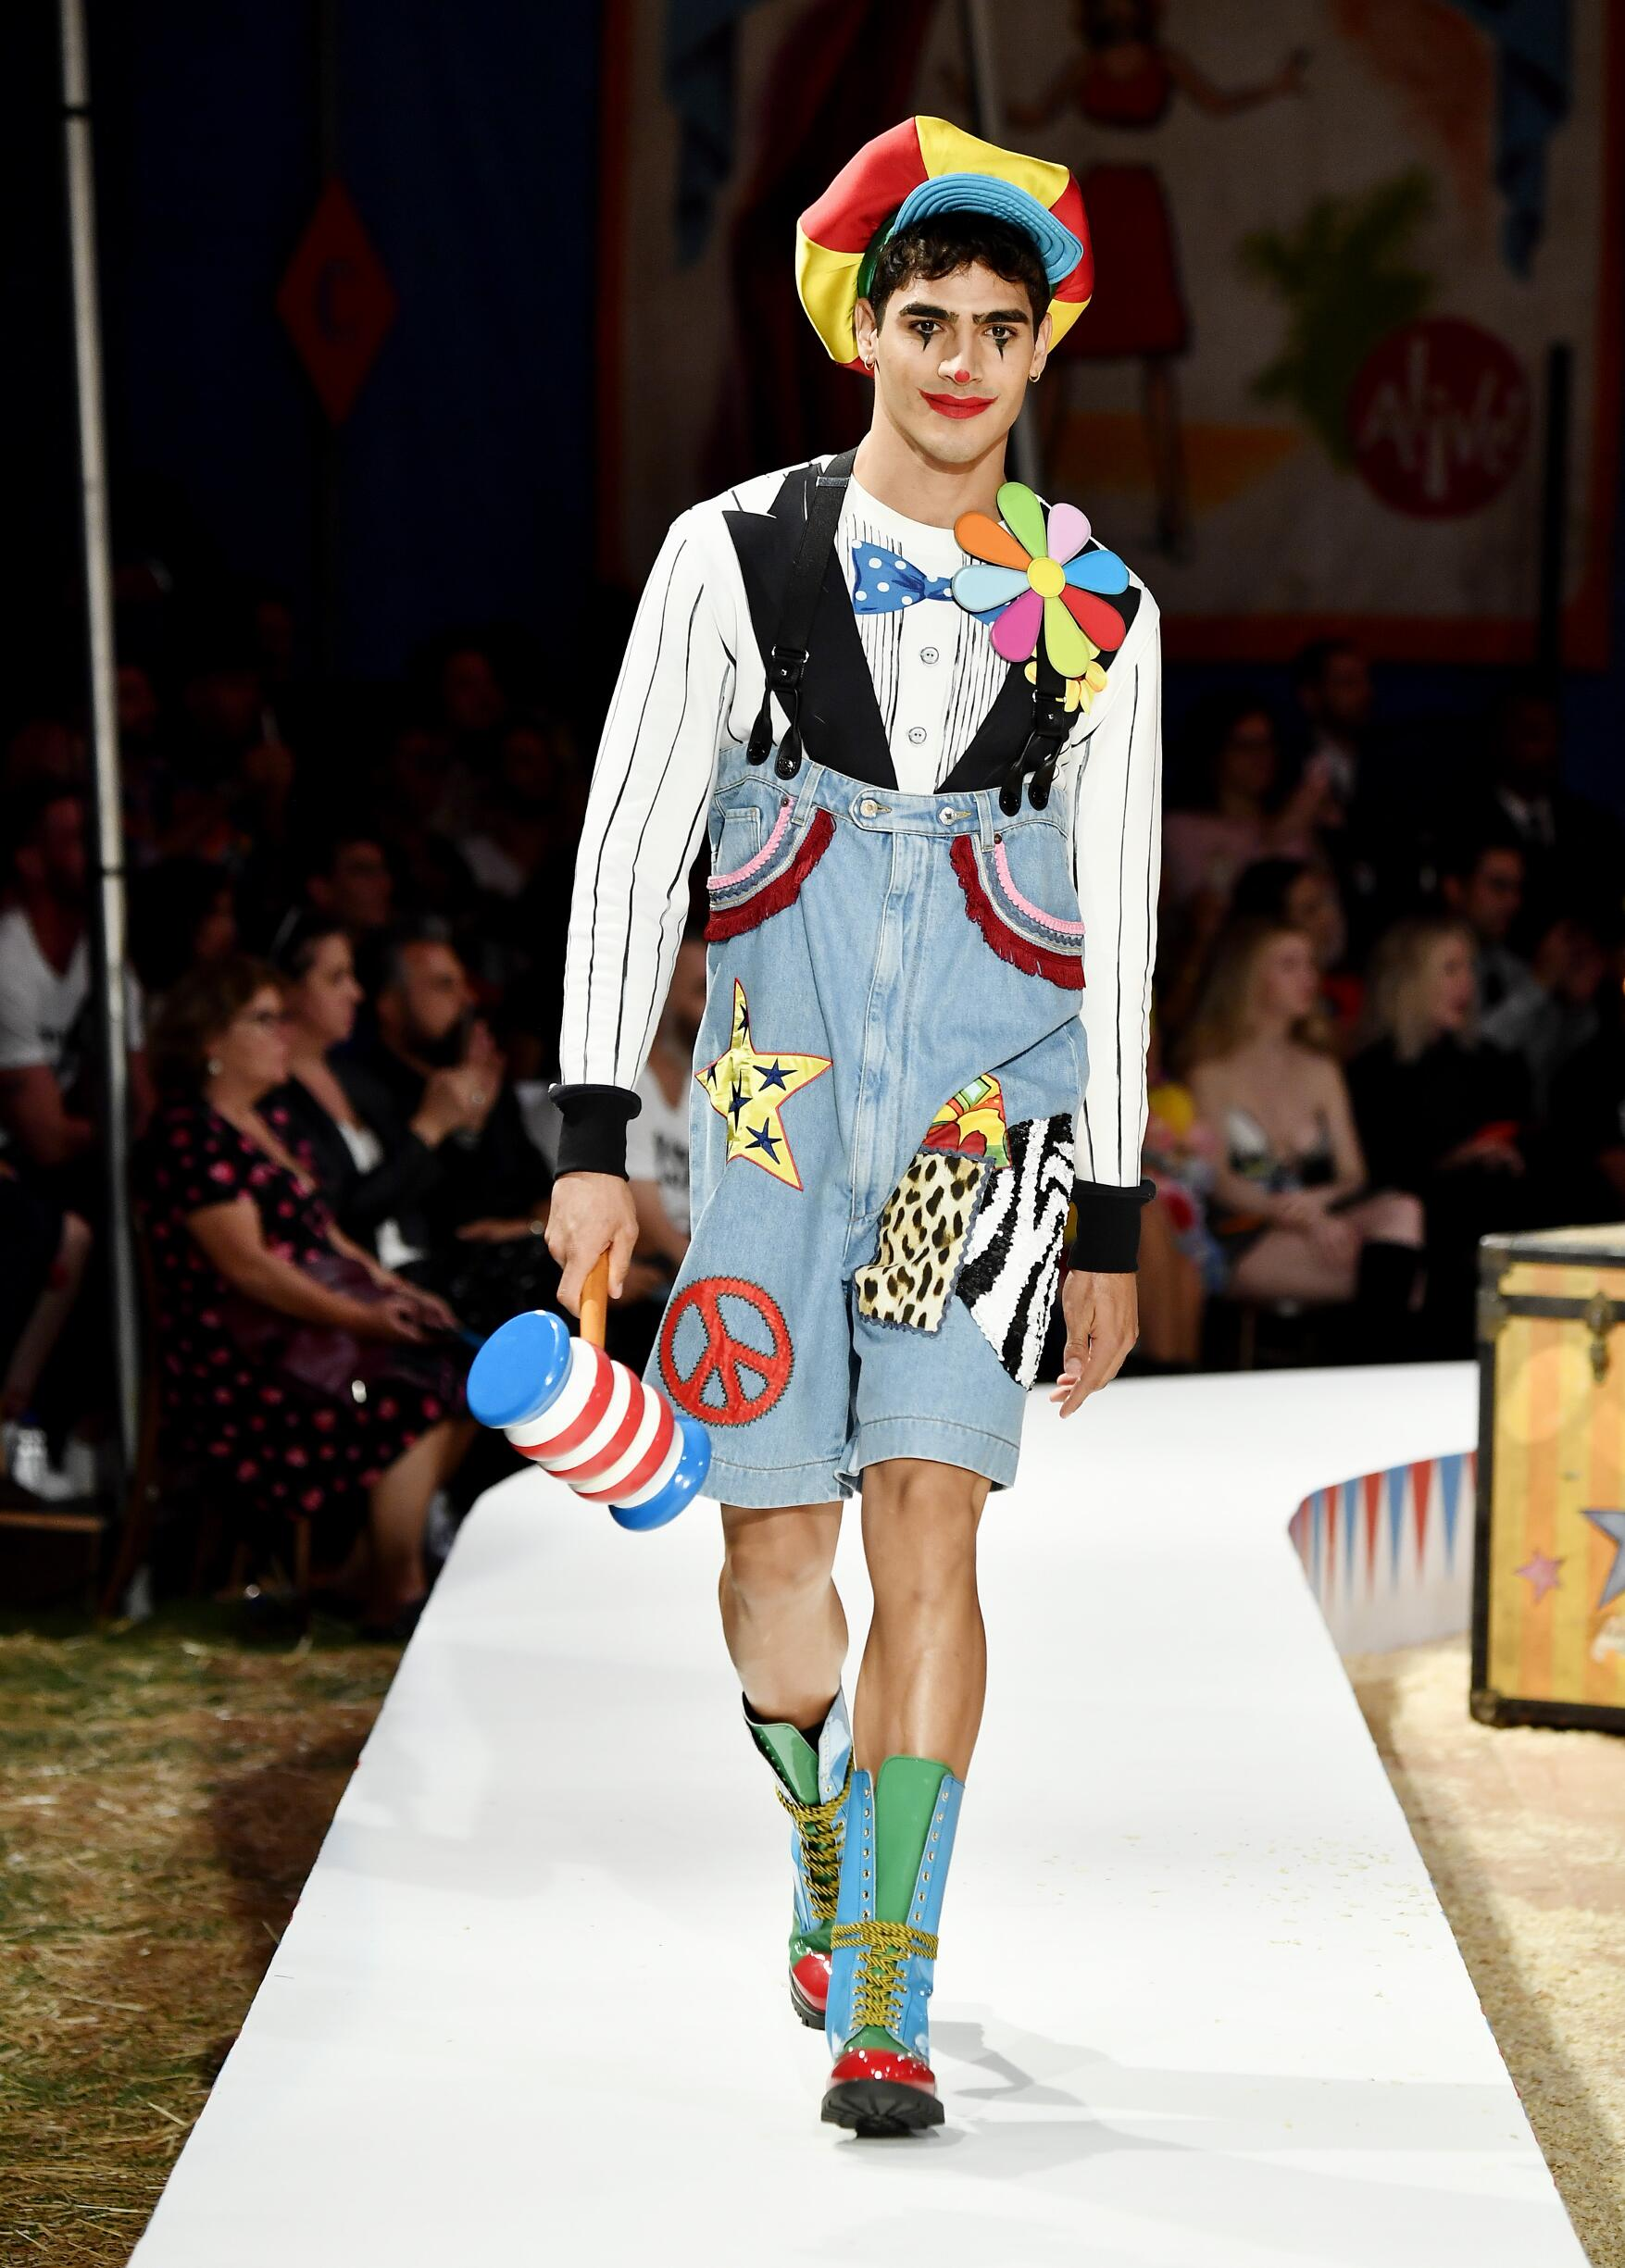 Moschino Spring Summer 2019 Menswear and Women's Resort Collection Look 7 Los Angeles